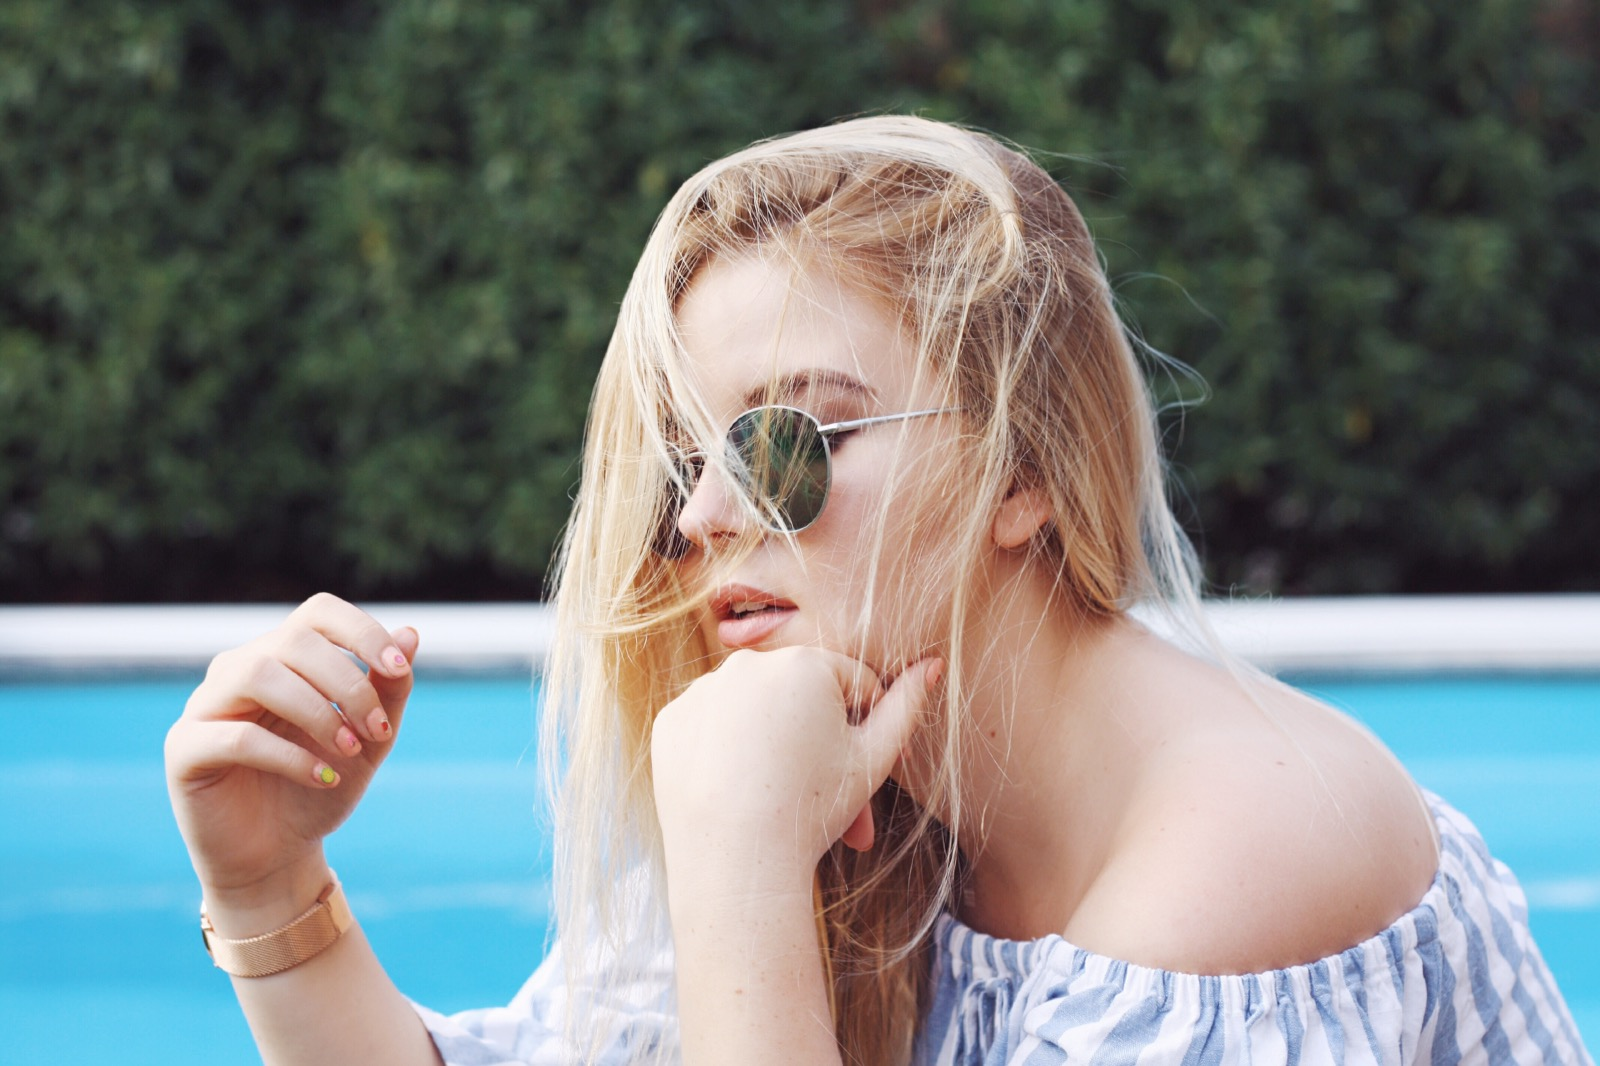 itsgoldie_itsgoldie_modeblog_hannover_fashionblog_brandfield_sonnenbrille_cluse_uhr_polaroid_ray_ban_sommer_accessoires_trends_tipps_shopping